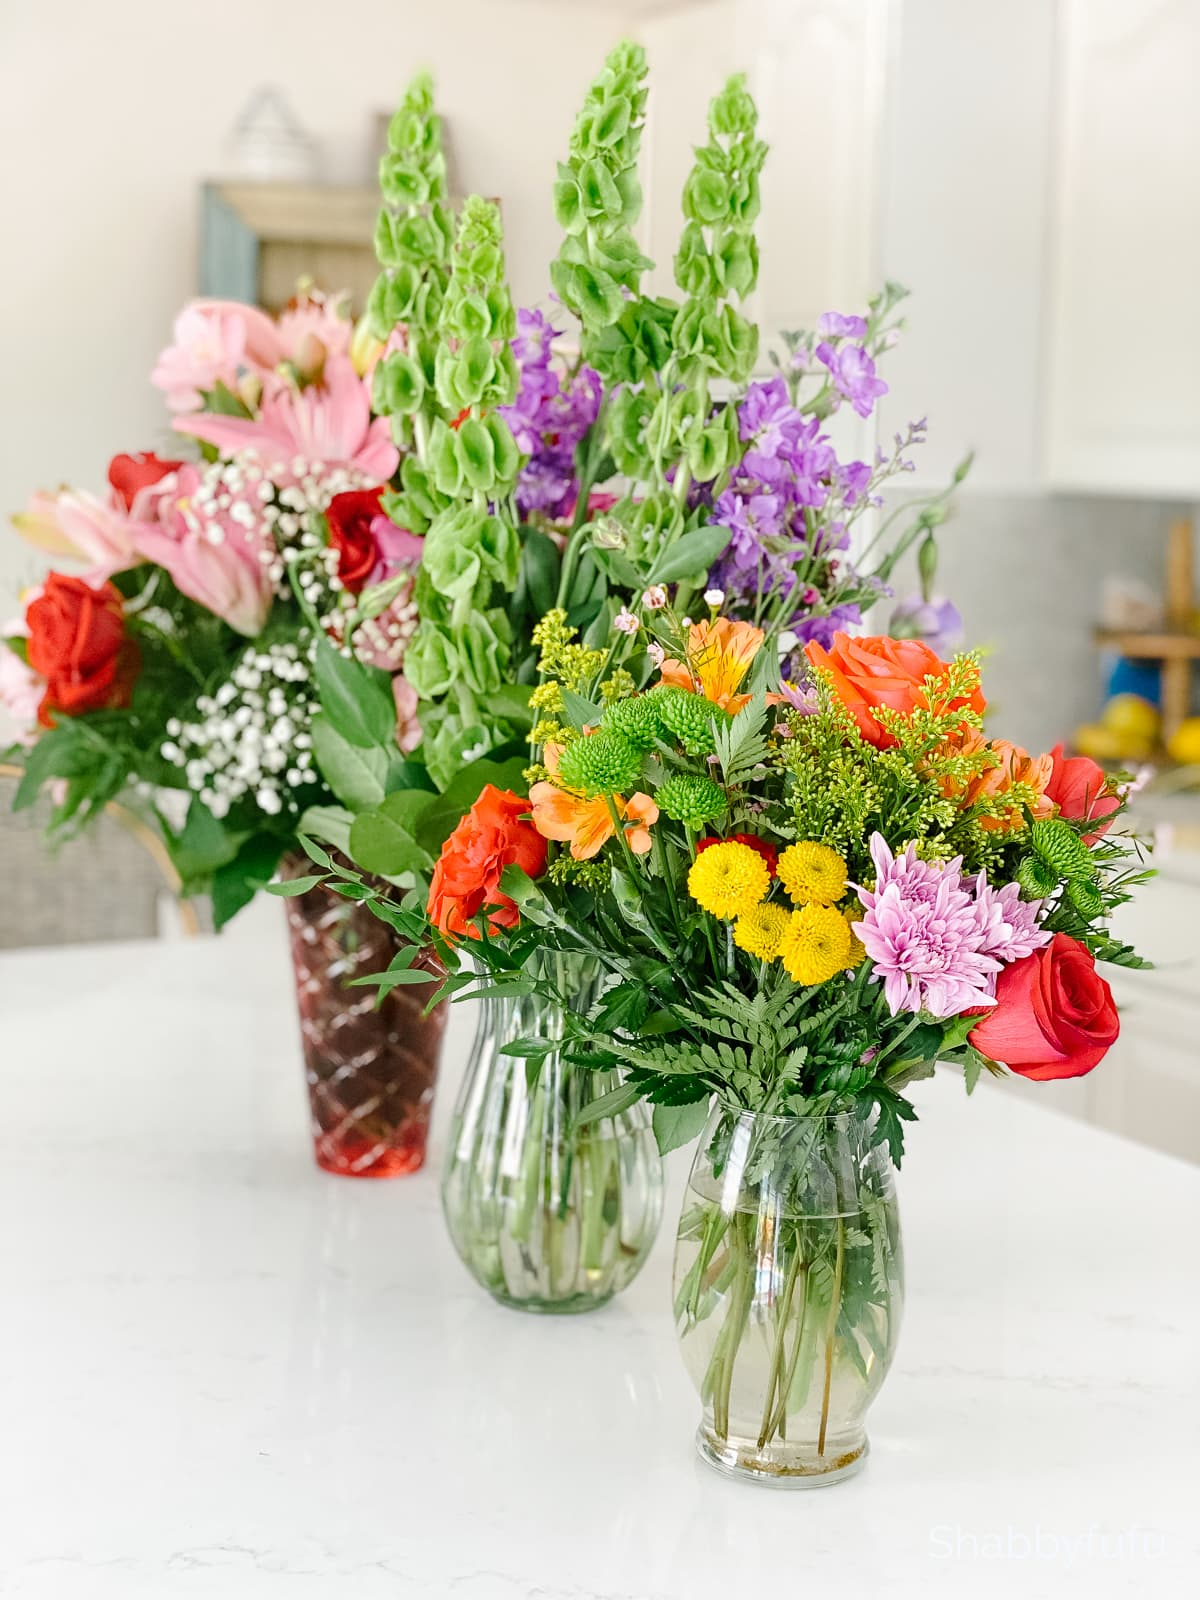 repurpose flowers indoors from the florist